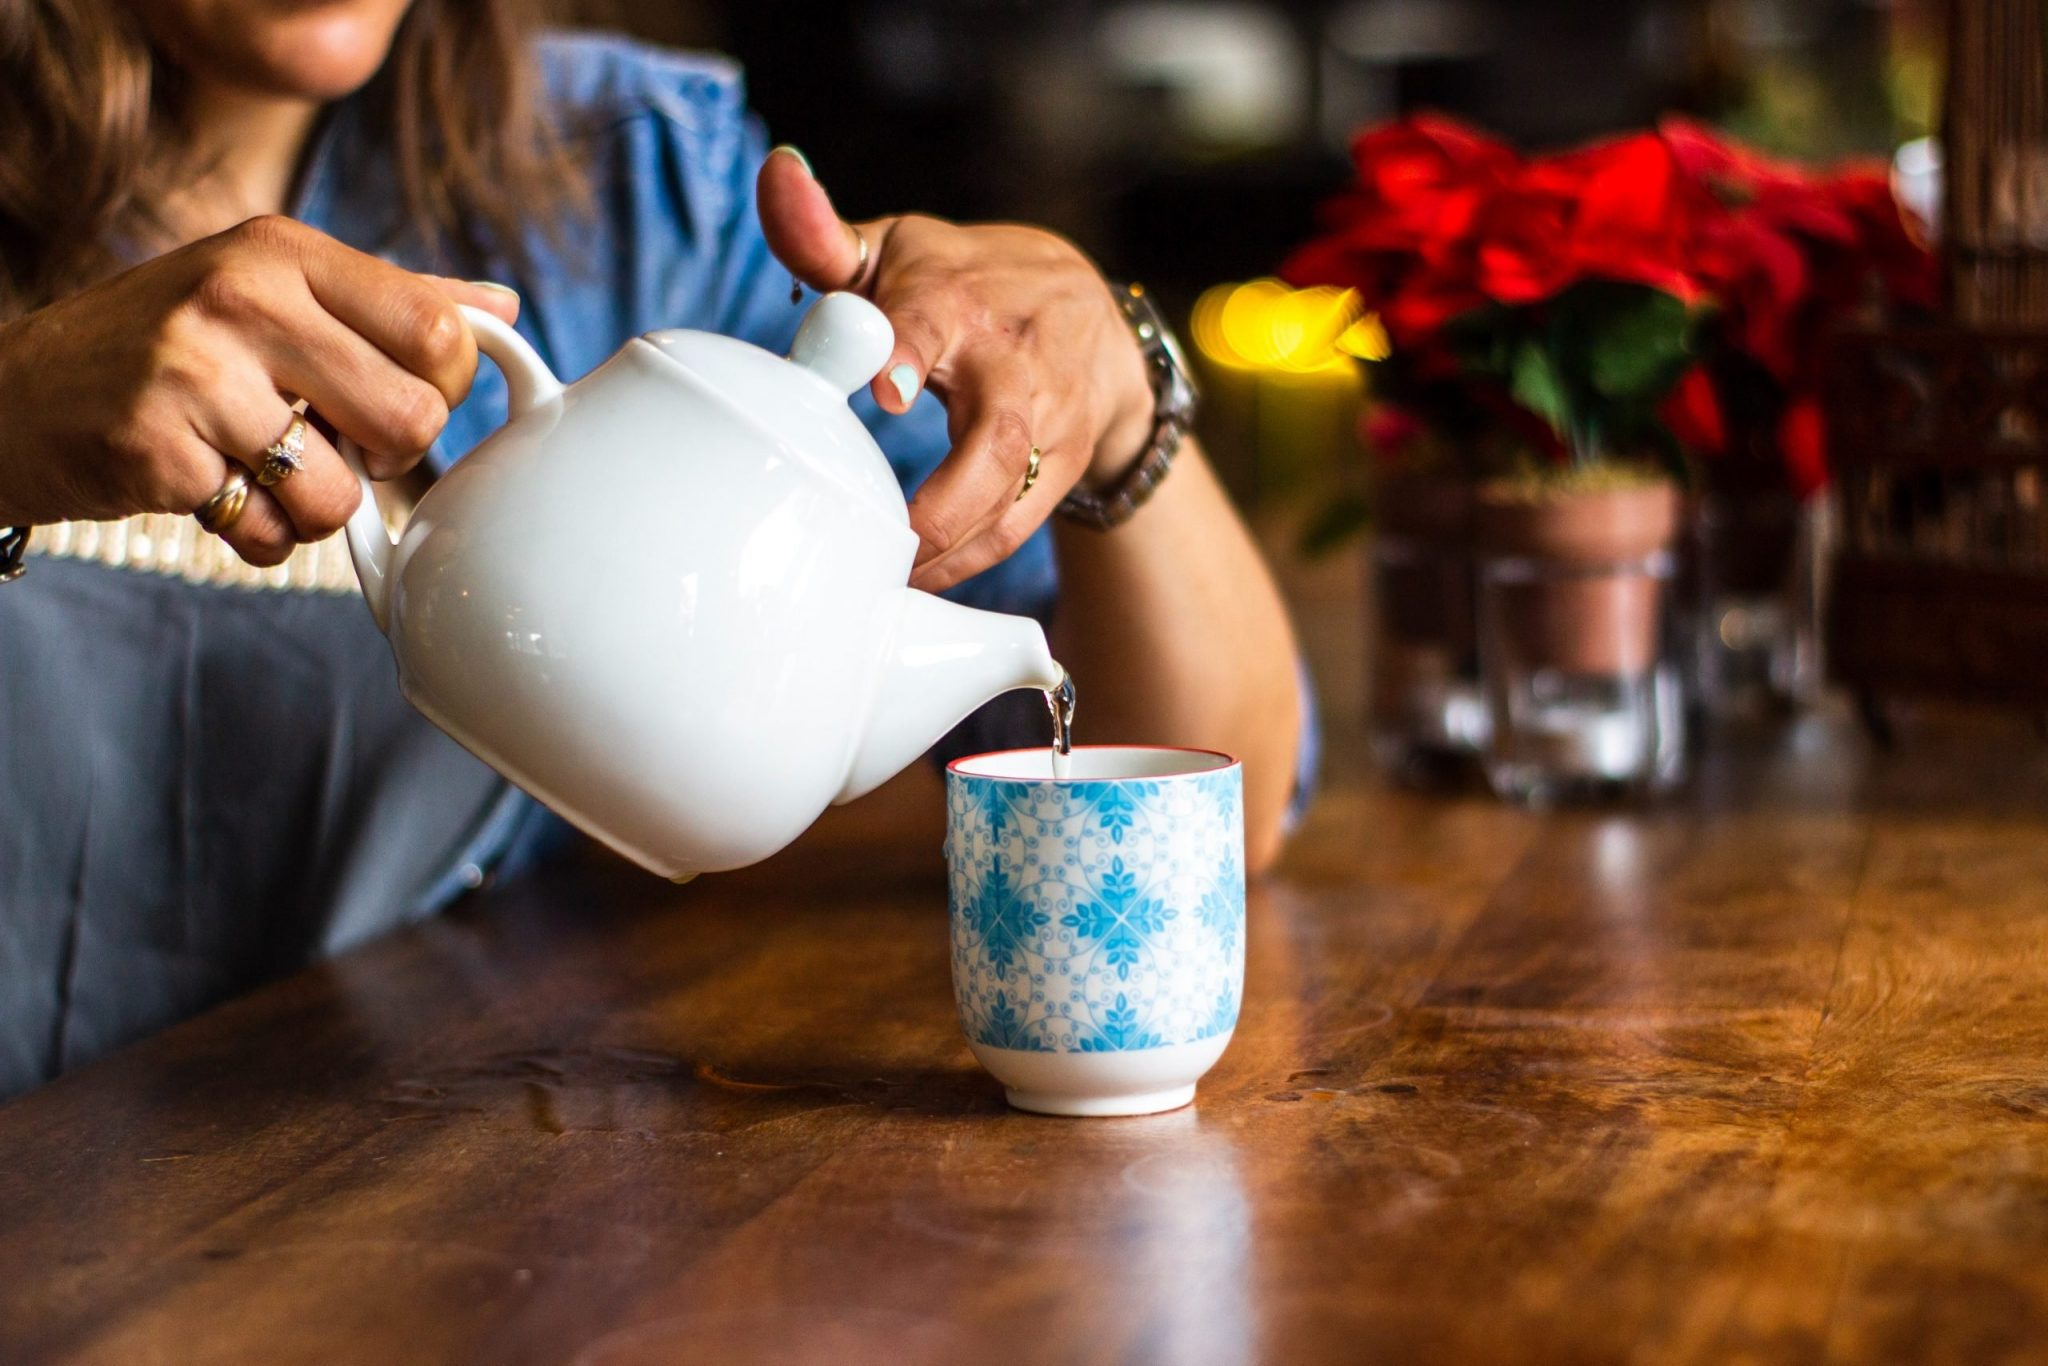 Woman pouring tea into cup from teapot - representing a restful break